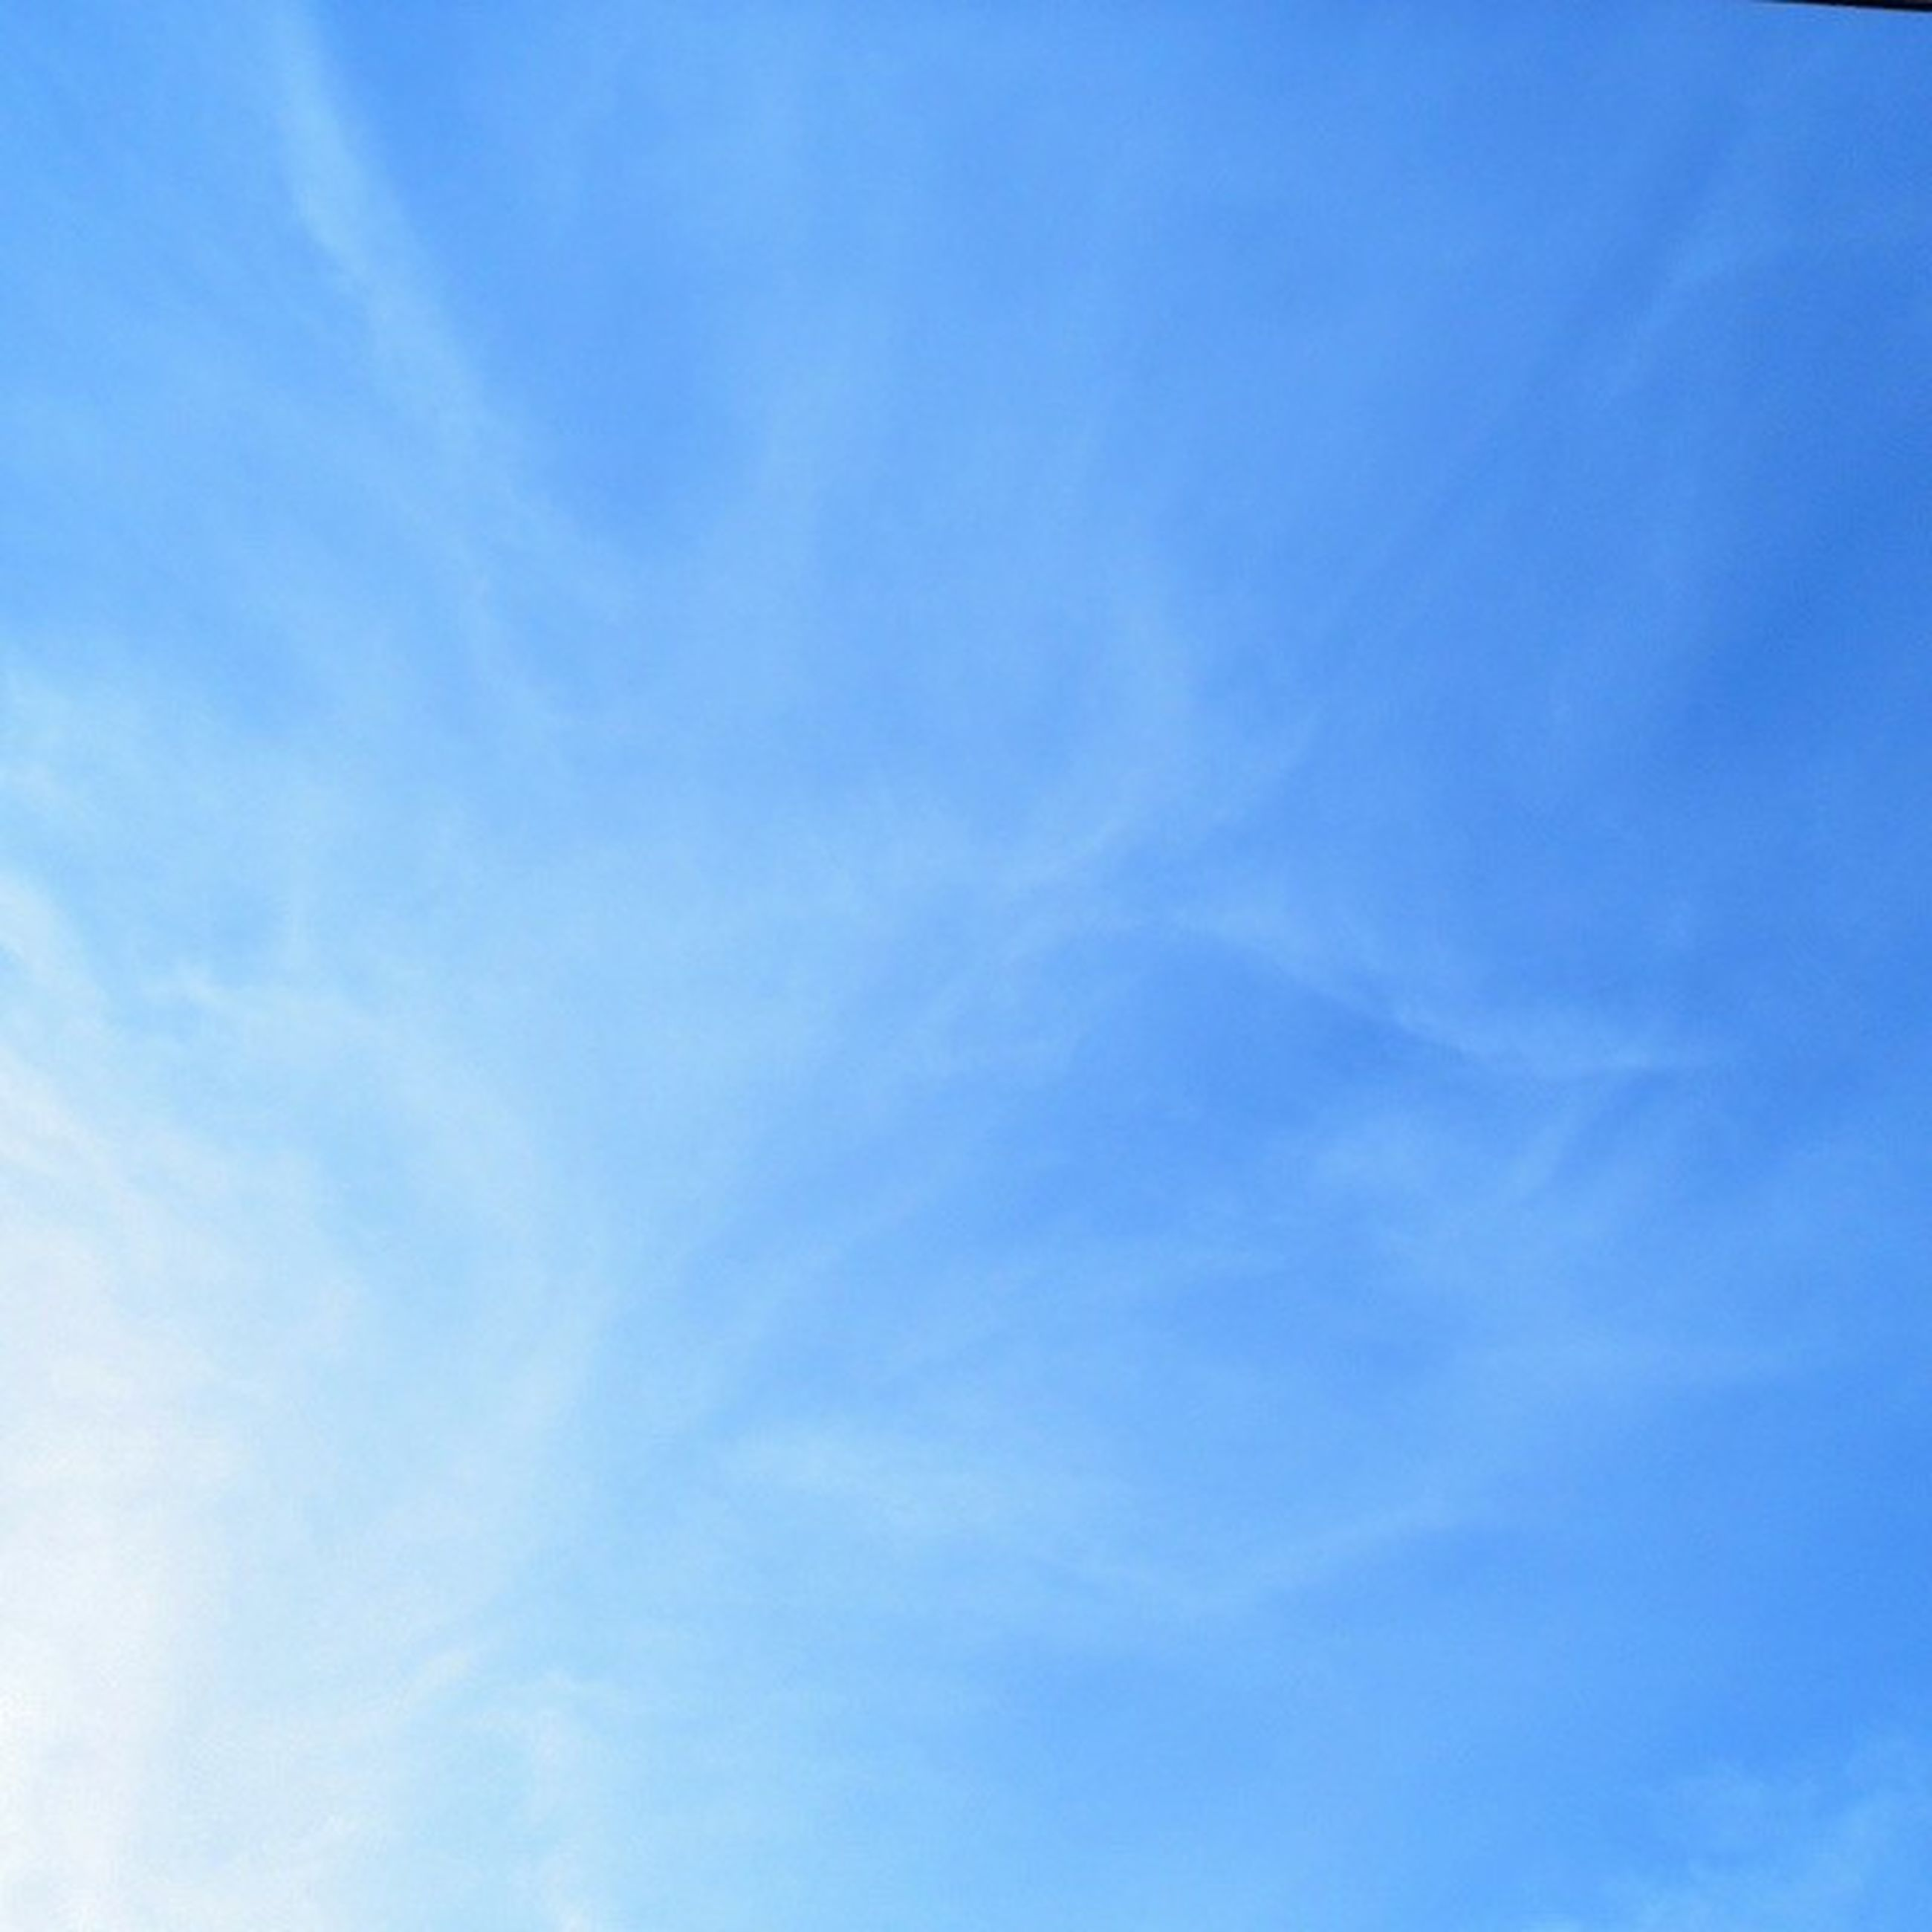 blue, low angle view, sky, tranquility, beauty in nature, scenics, nature, tranquil scene, cloud - sky, cloud, day, sky only, white color, idyllic, outdoors, copy space, backgrounds, no people, cloudscape, white